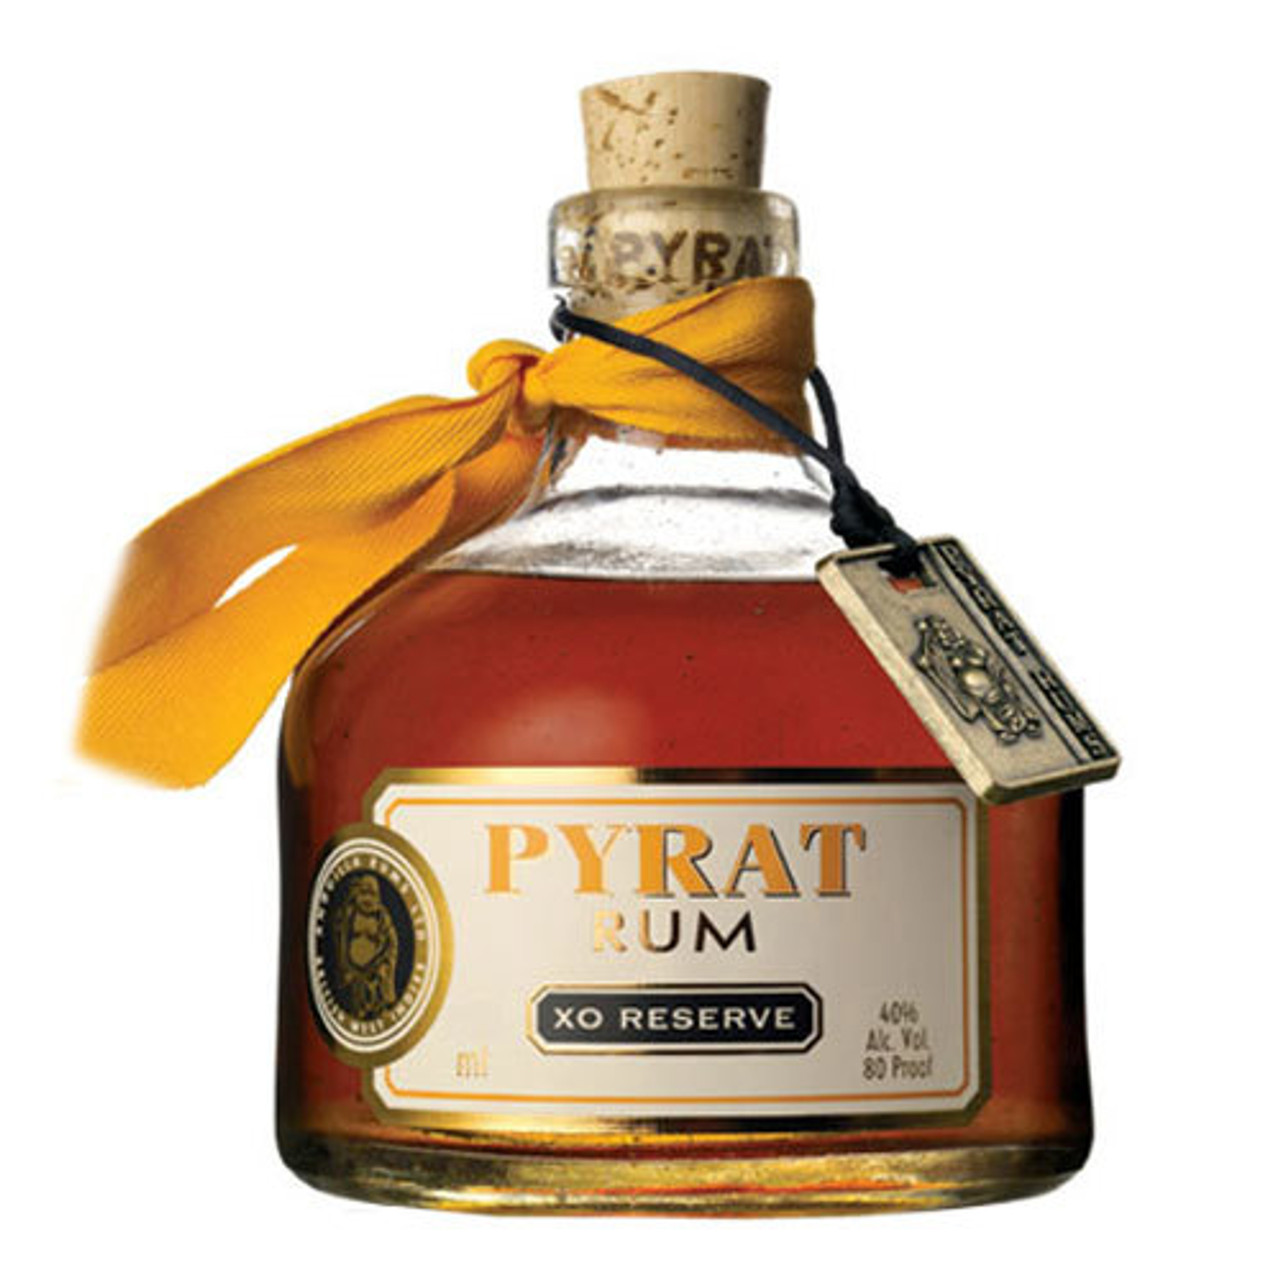 Pyrat XO Reserve is a complex yet mellow blend of select Caribbean rums, aged 15 years in French Limousin & American sweet oak barrels.